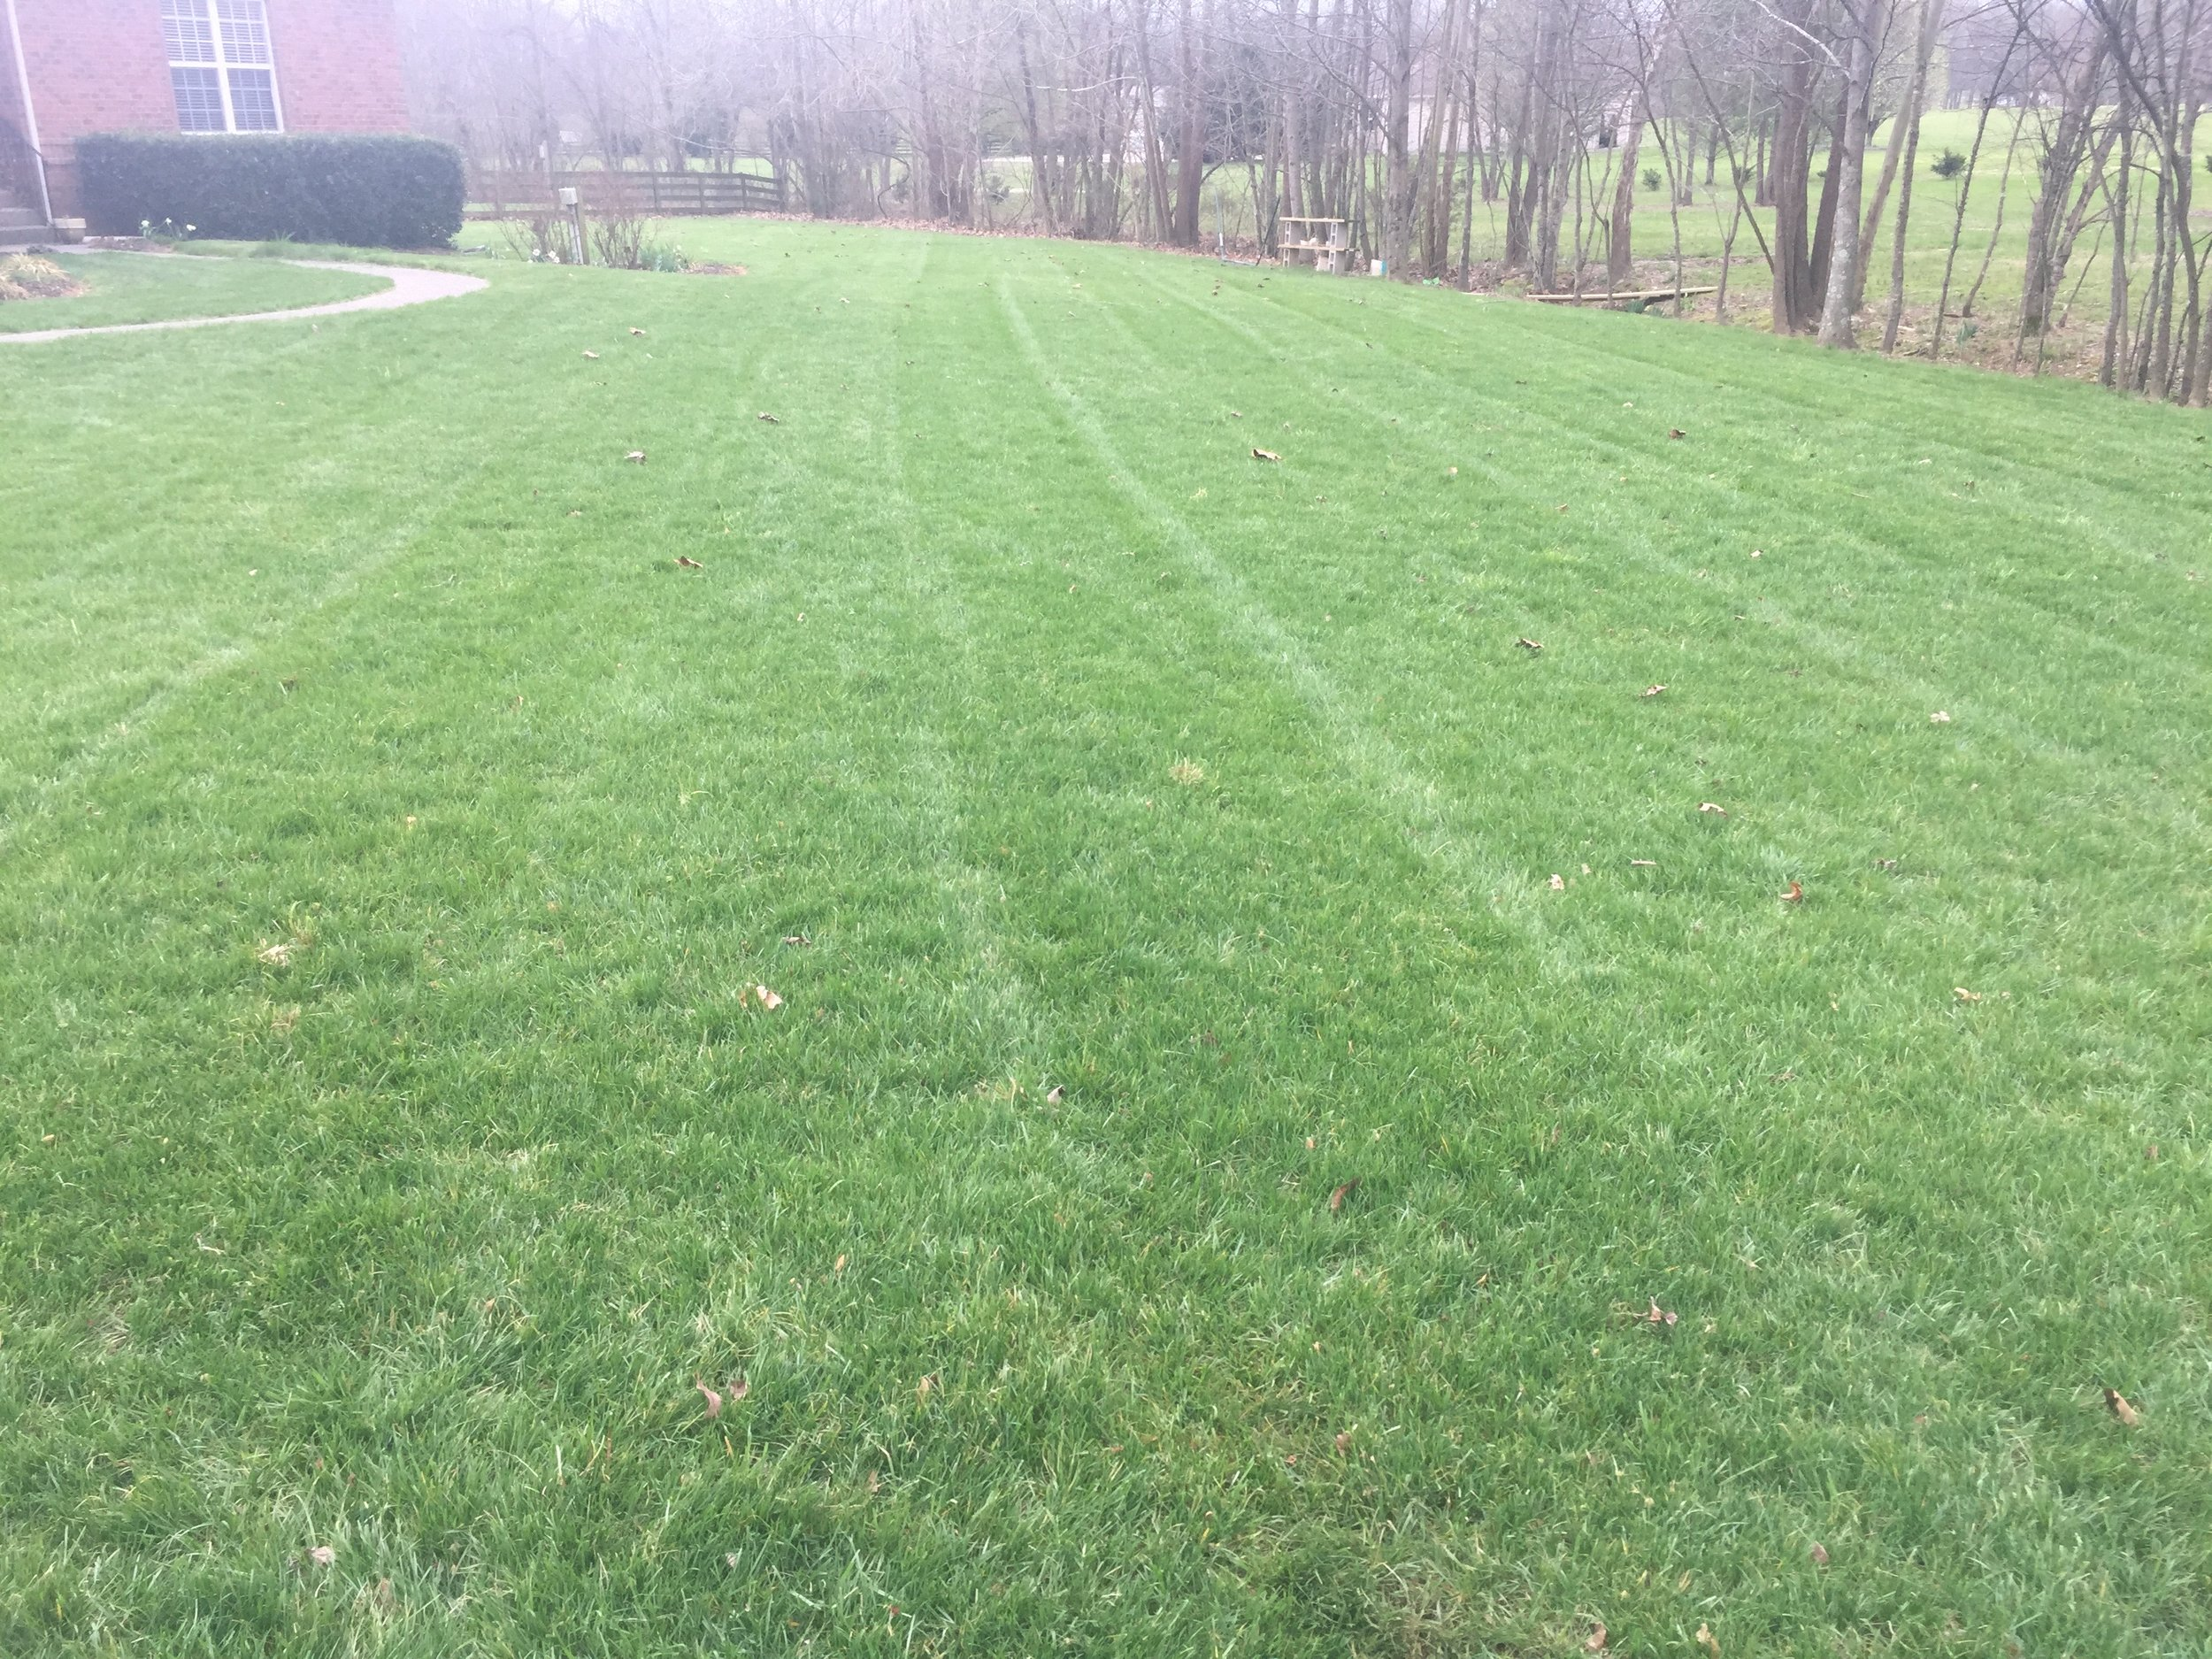 Treatment 1 - Pre-emergent, Fertilizer, RGS,  Weed Control (Feb - Mid March) Fertilizer and pre-emergent applied to continue feeding the lawn and preventing crabgrass through the summer.  RGS is a root growth stimulate and helps build healthy soil.  Also any weeds will be sprayed with herbicides.